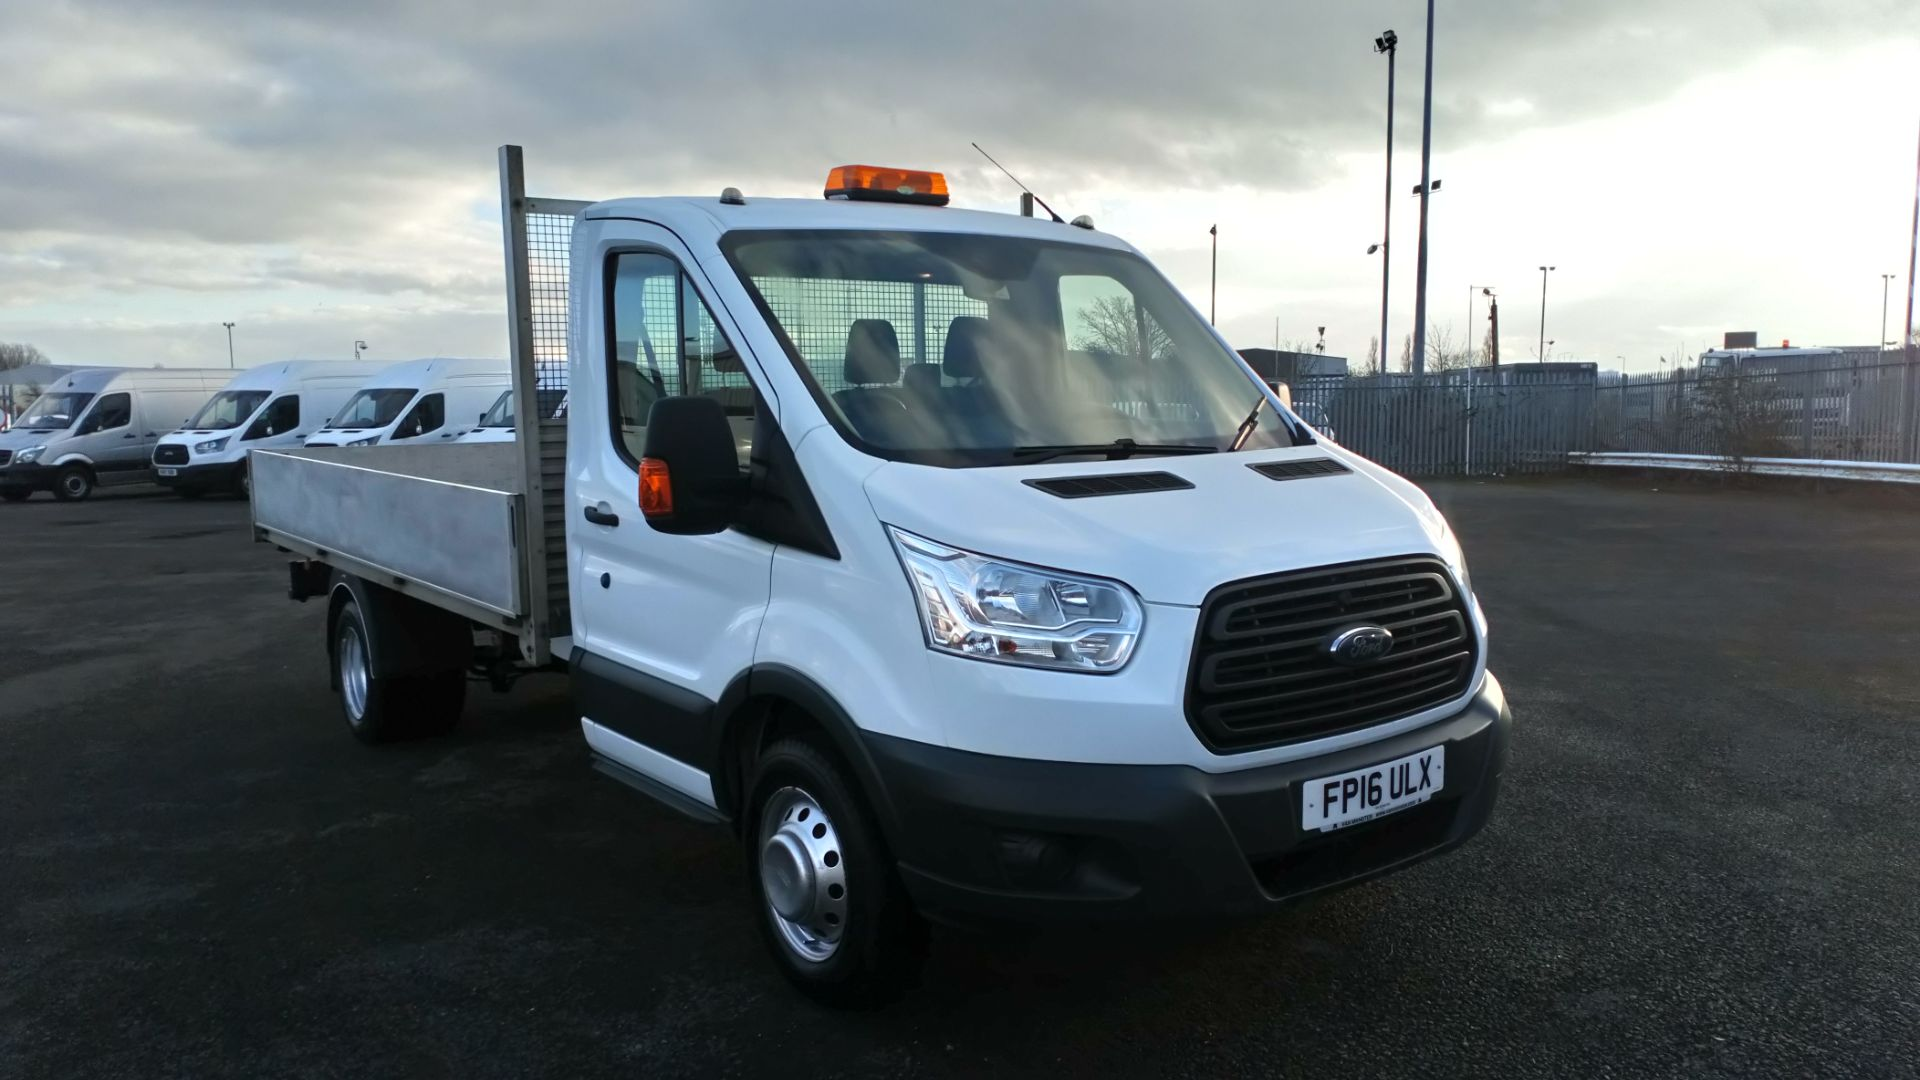 2016 Ford Transit 2.2 Tdci 125Ps Chassis Cab (FP16ULX)